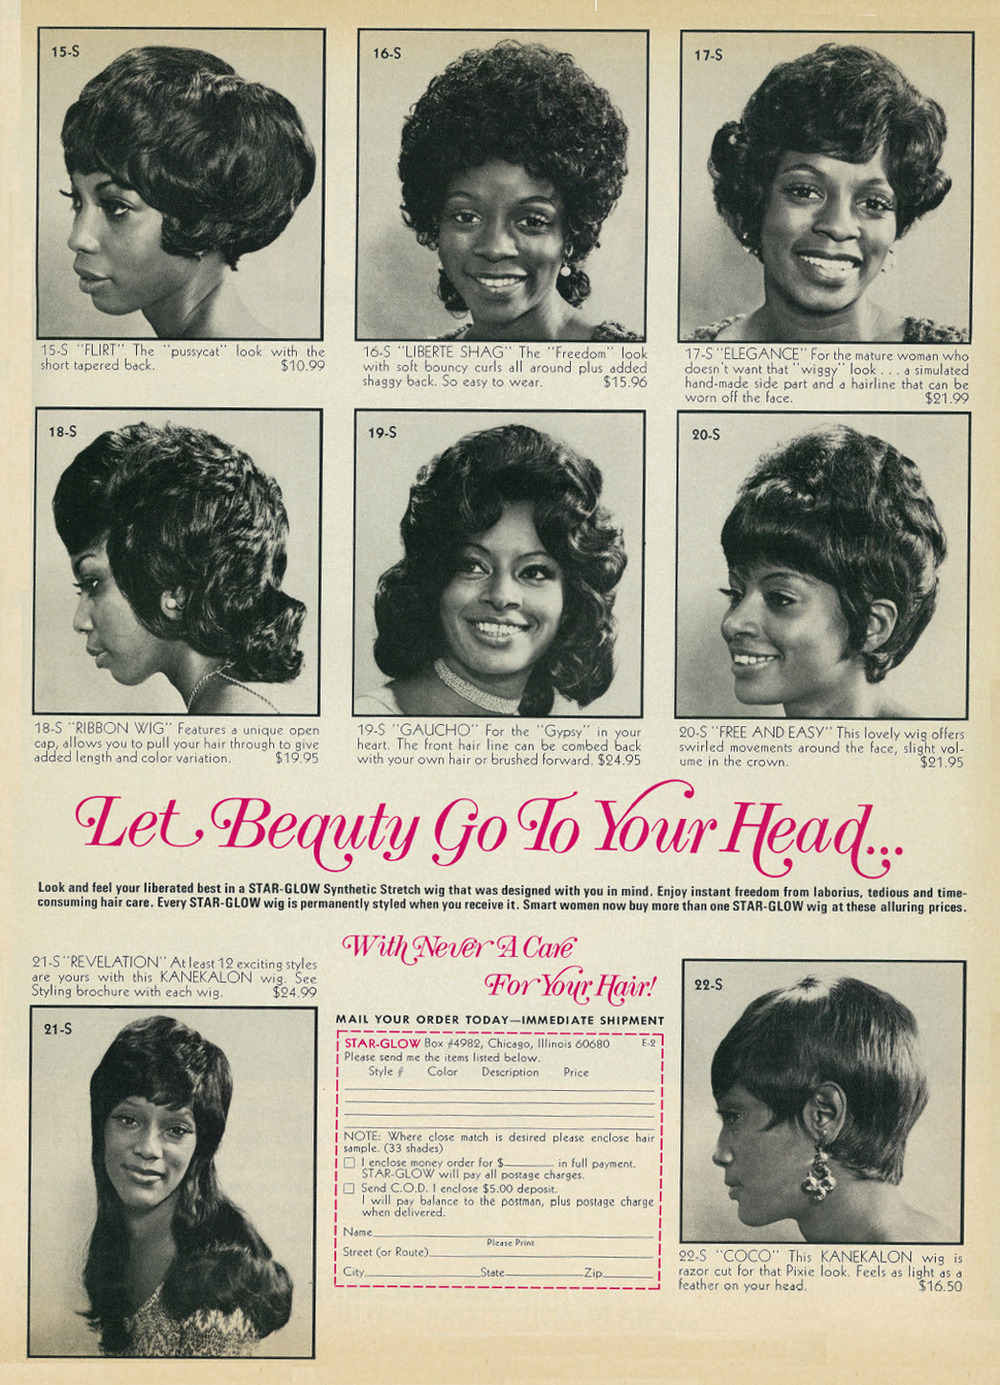 fast history: black women and their hair – intelexual media